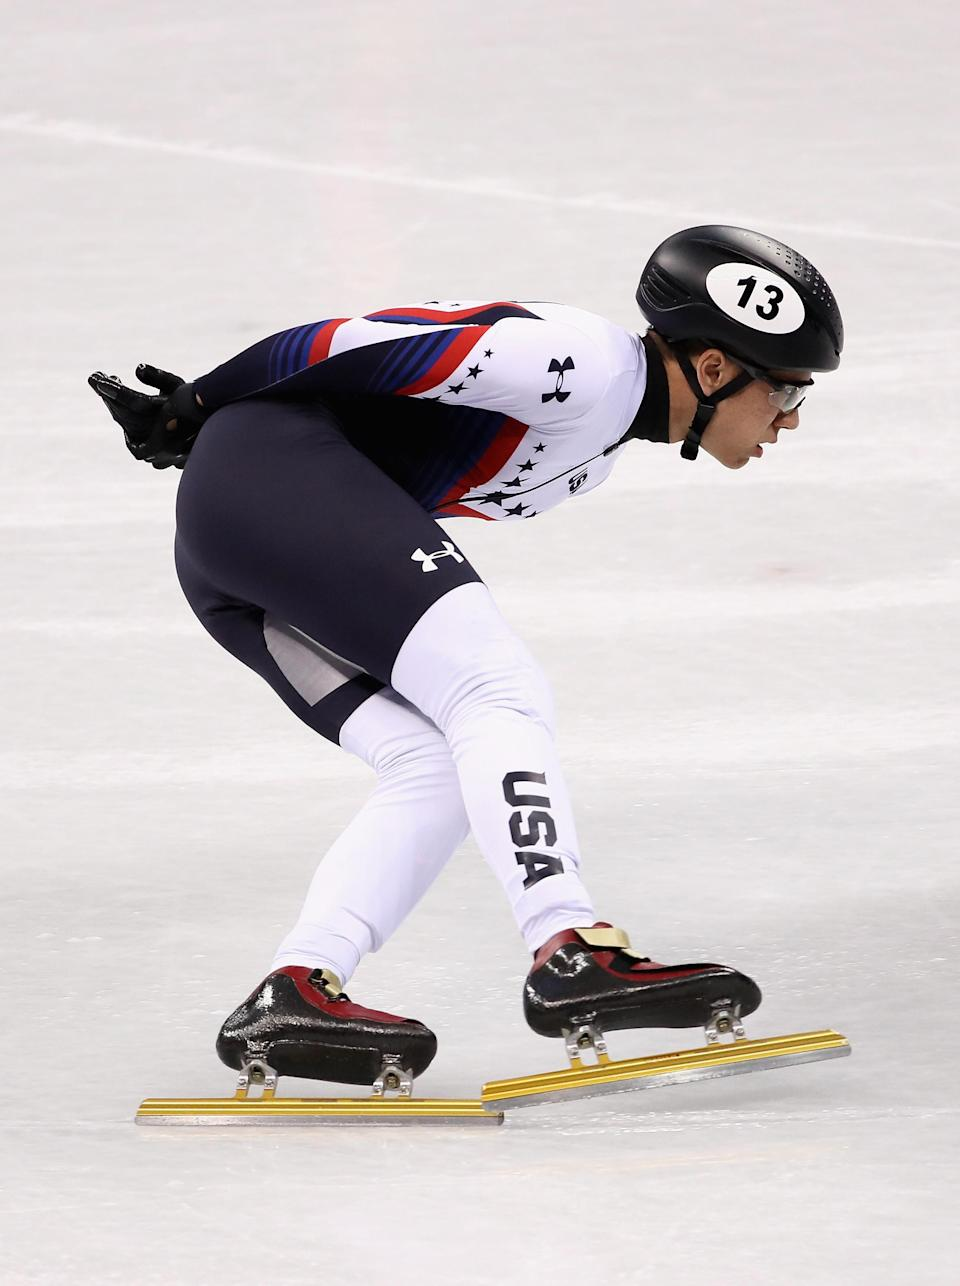 J.R. Celski is one of three of the United States' top speed skaters from Washington.